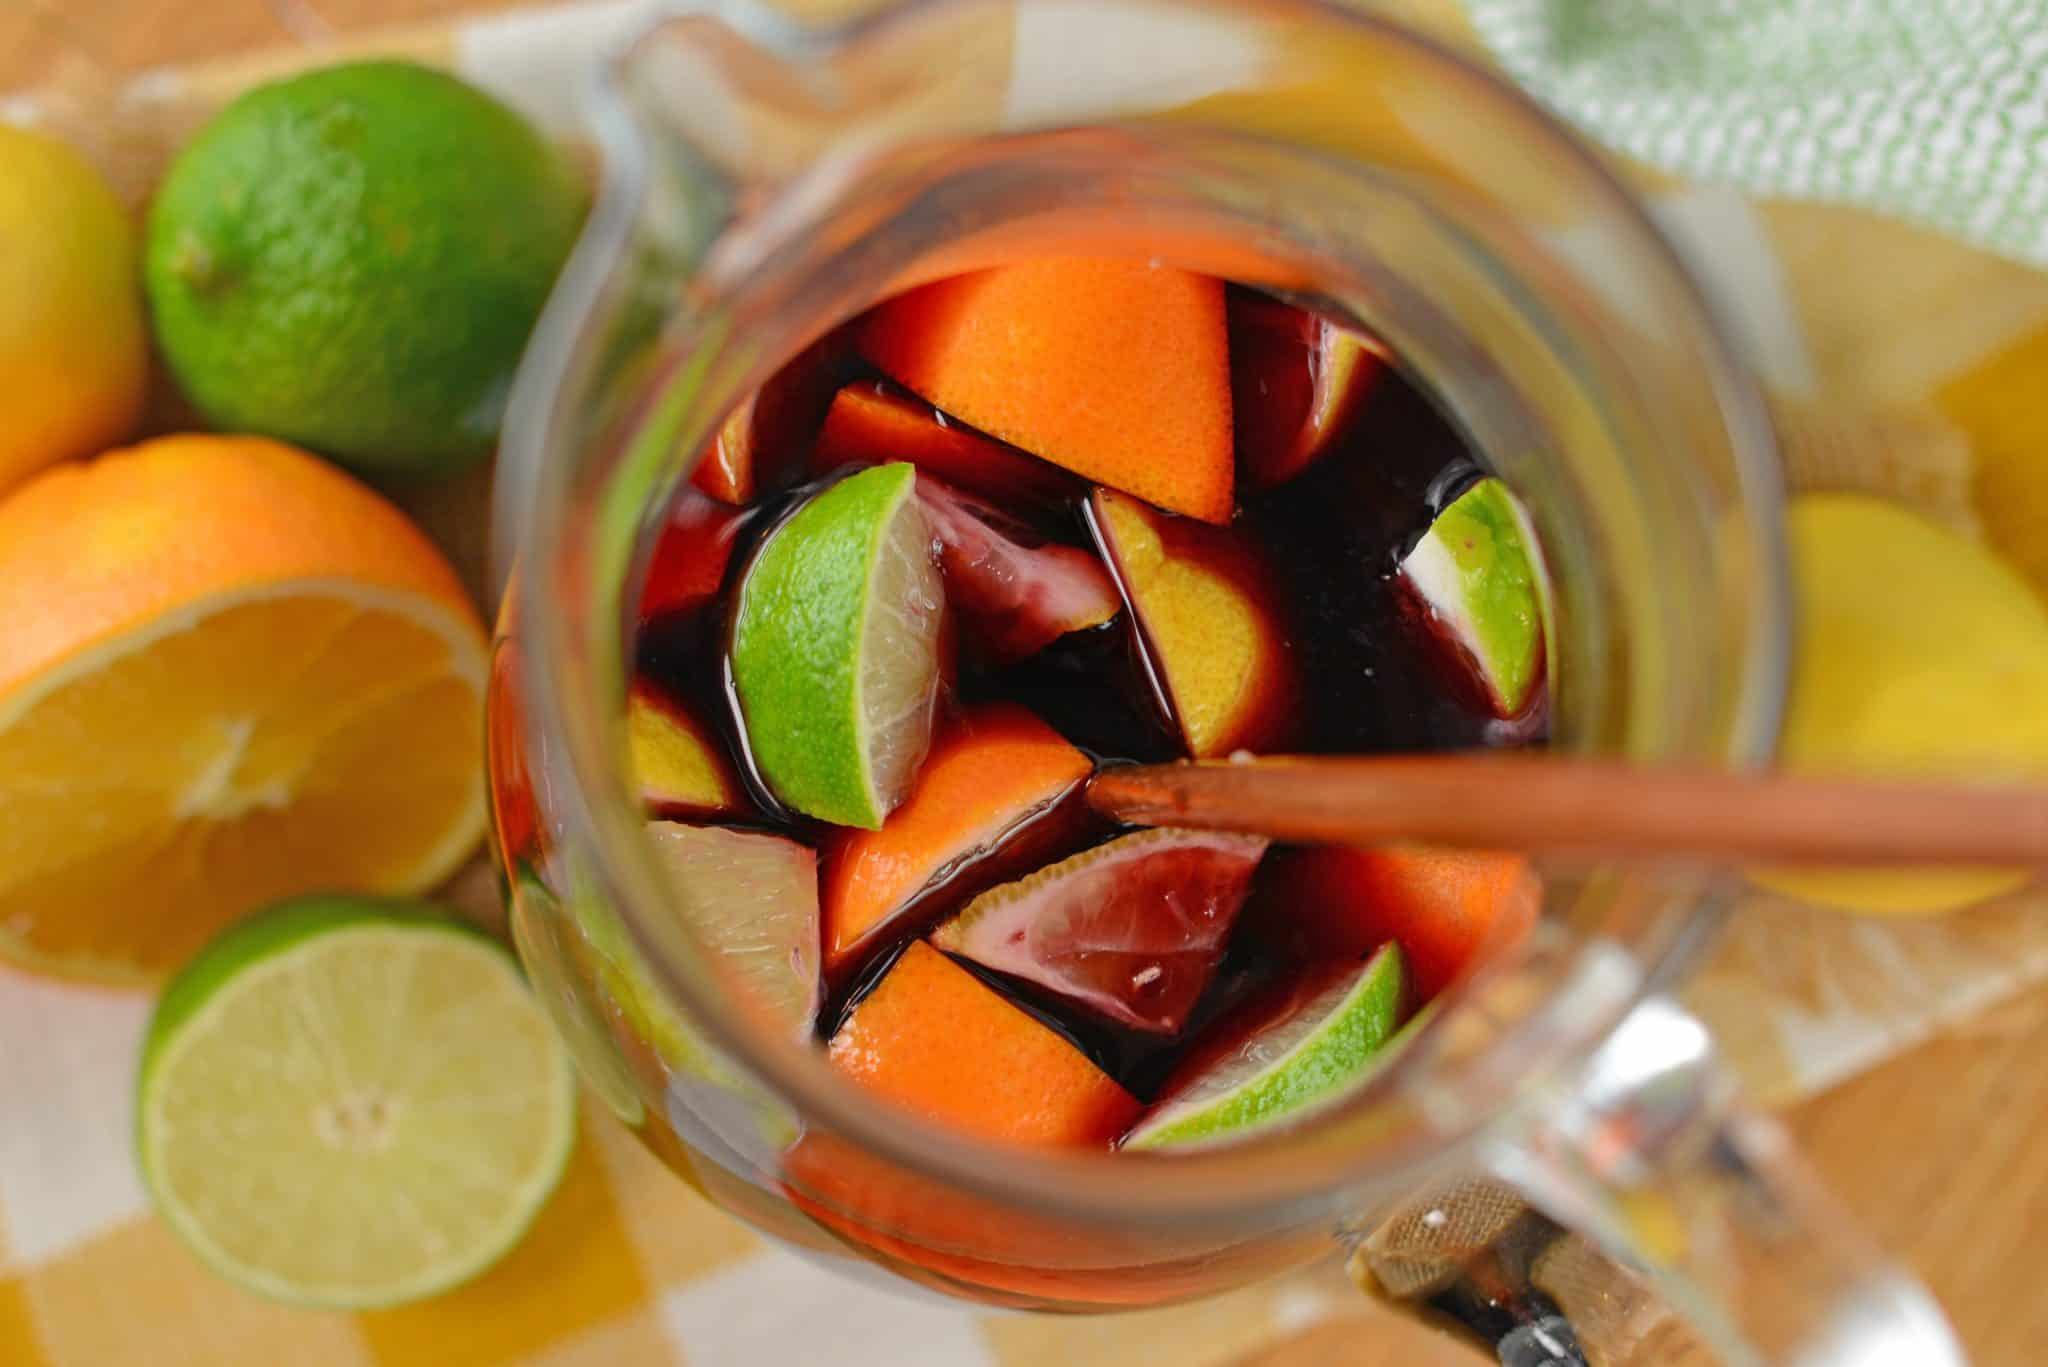 Red sangria the best fall sangria recipe with fresh fruit this red sangria recipe shows you how to make sangria the simplest way possible its thecheapjerseys Choice Image